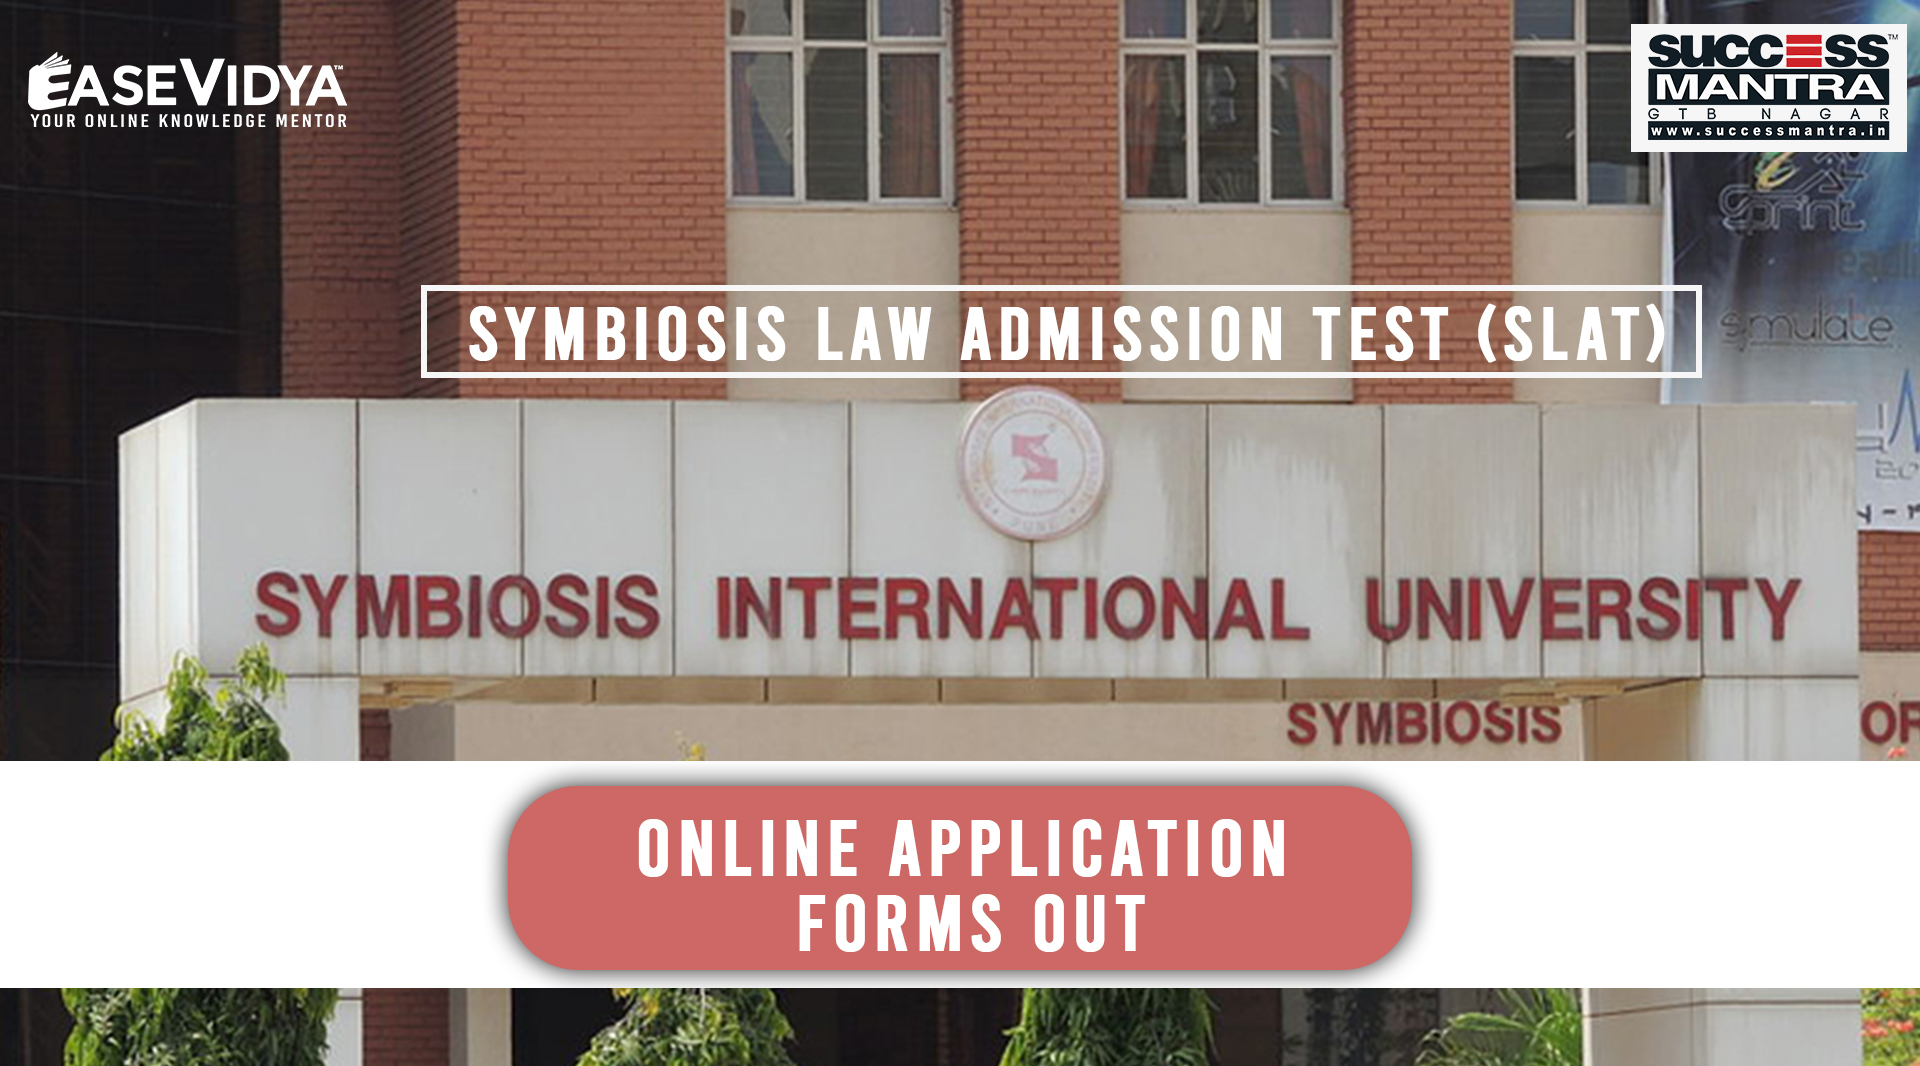 Symbiosis Law Admission Test SLAT 2020 Application Forms Out | Success Mantra Coaching Institute For Management Courses Like BBA, BBA IT, BCA, B.SC. Hotel Management, Law, LLB, BA LLB, LLB Integrated Course | All Information About Slat | Opening Date | Last Date | Eligibility | Application Process | Admit Card | Documents Required | Application Link